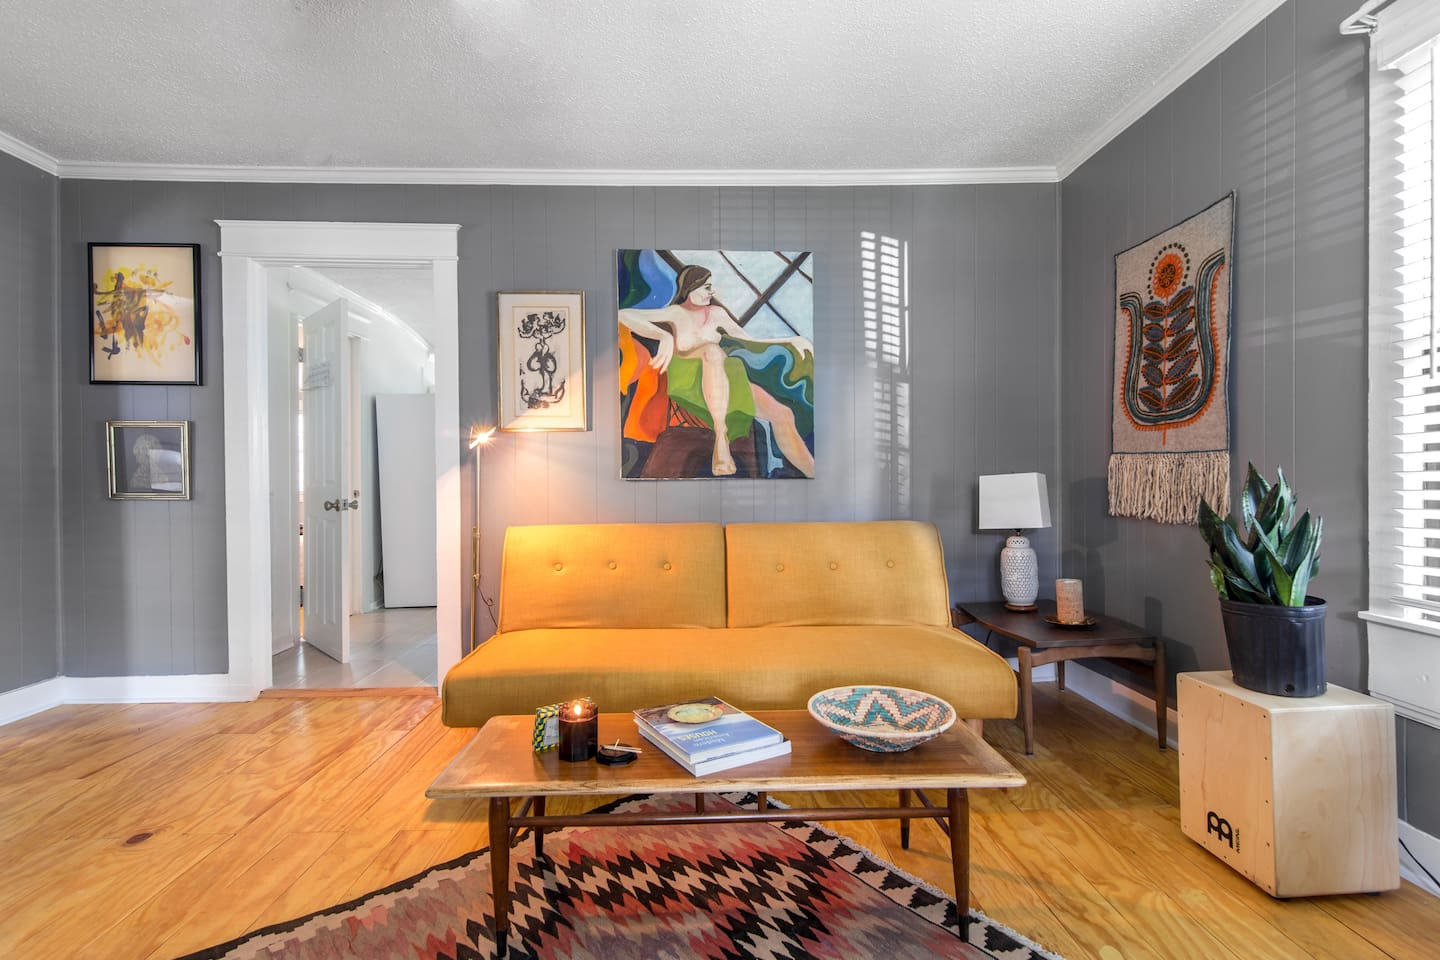 Living room space with Scandinavian light wood floors, collected art and midcentury furnishings. Yellow sofa folds down into a full-sized bed.